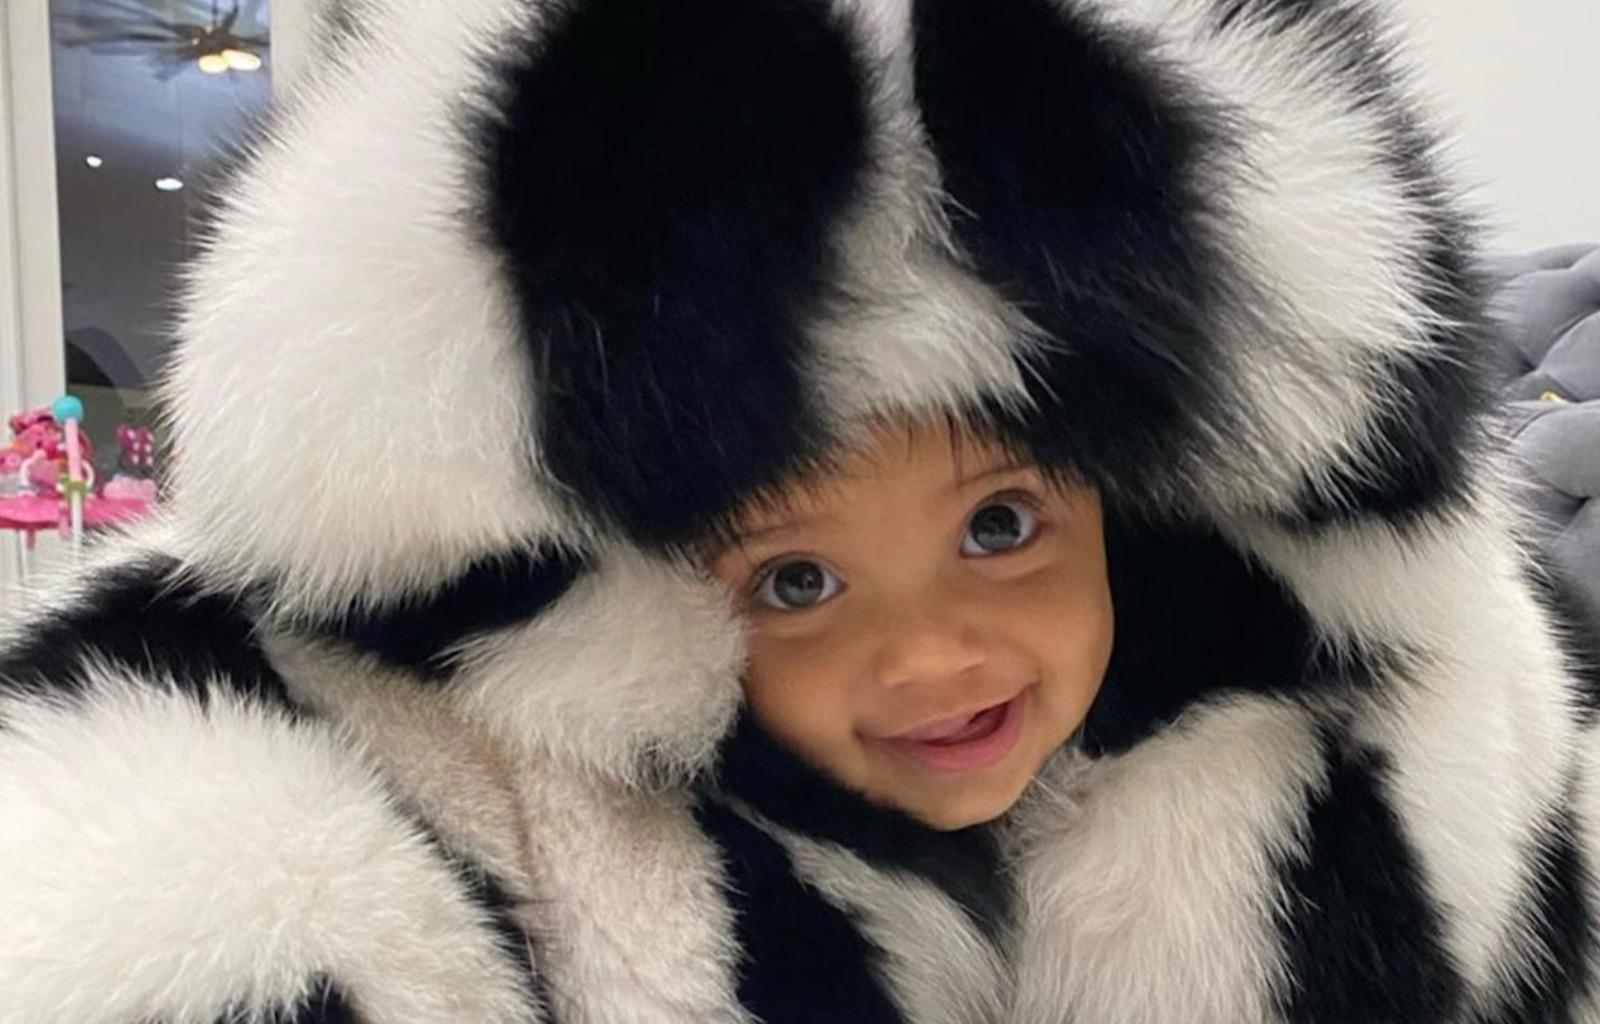 Erica Mena's Daughter, Safire Majesty Is Getting Ready For Her Frist Christmas - Check Out This Gorgeous Video Of Her